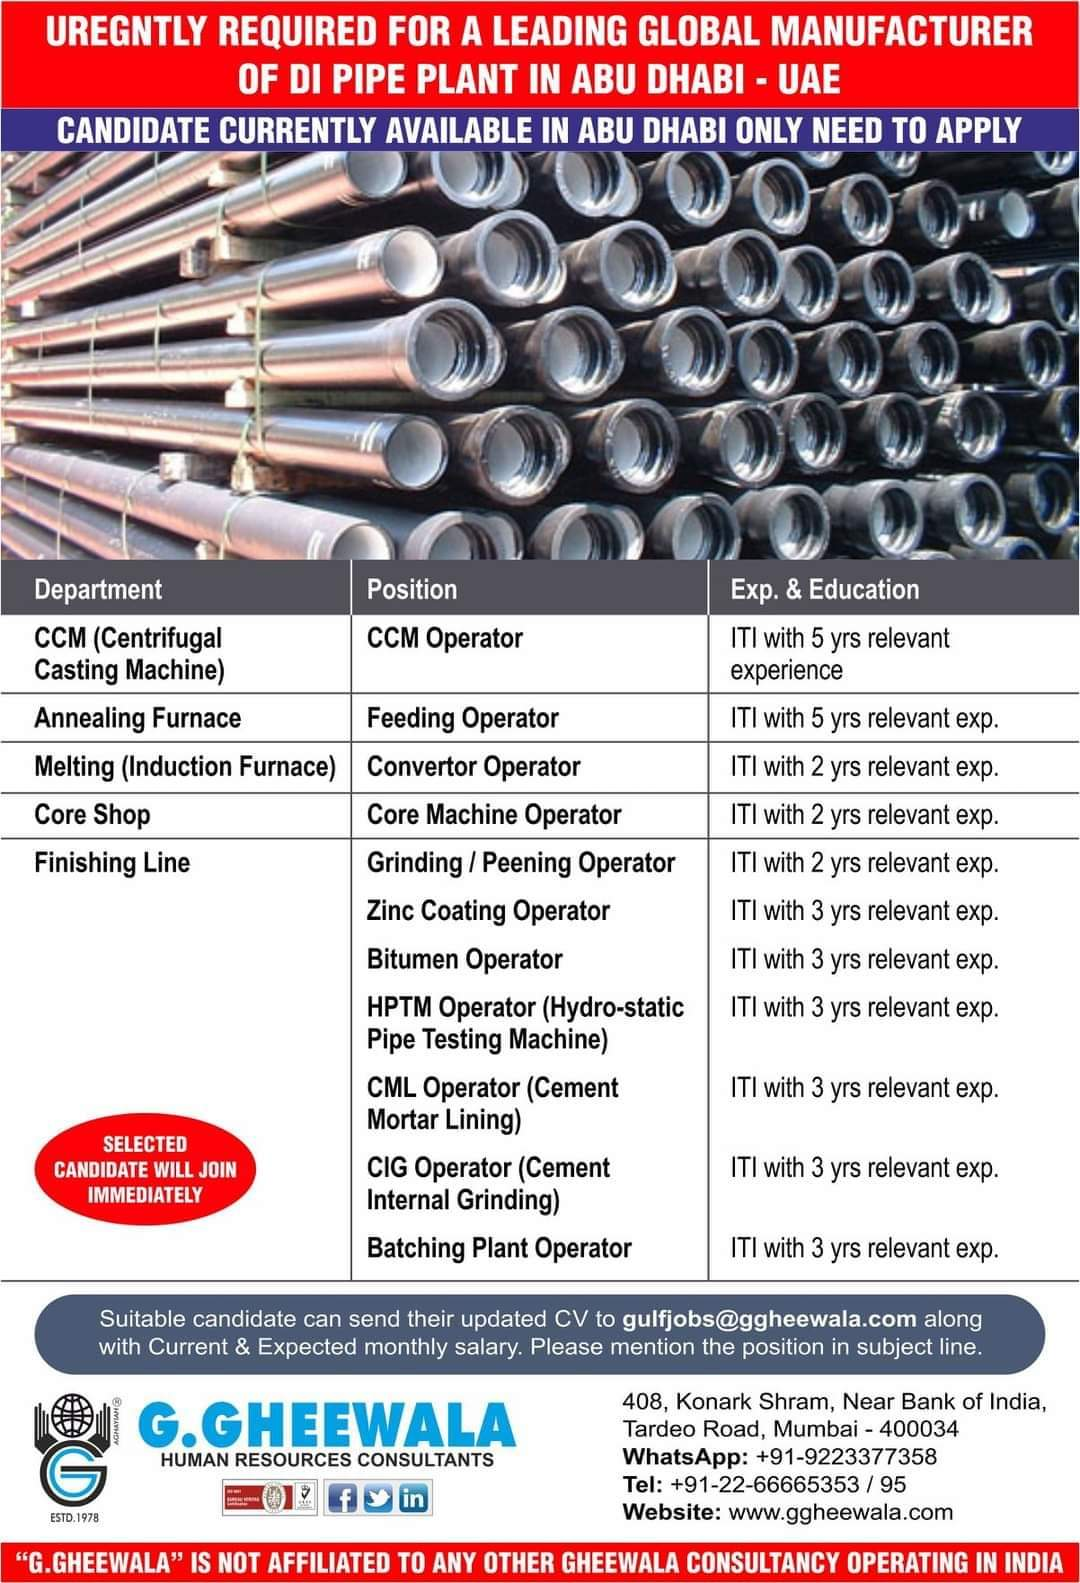 URGENTLY REQUIRED FOR A LEADING GLOBAL MANUFACTURER OF DI PIPE PLANT IN ABU DHABI